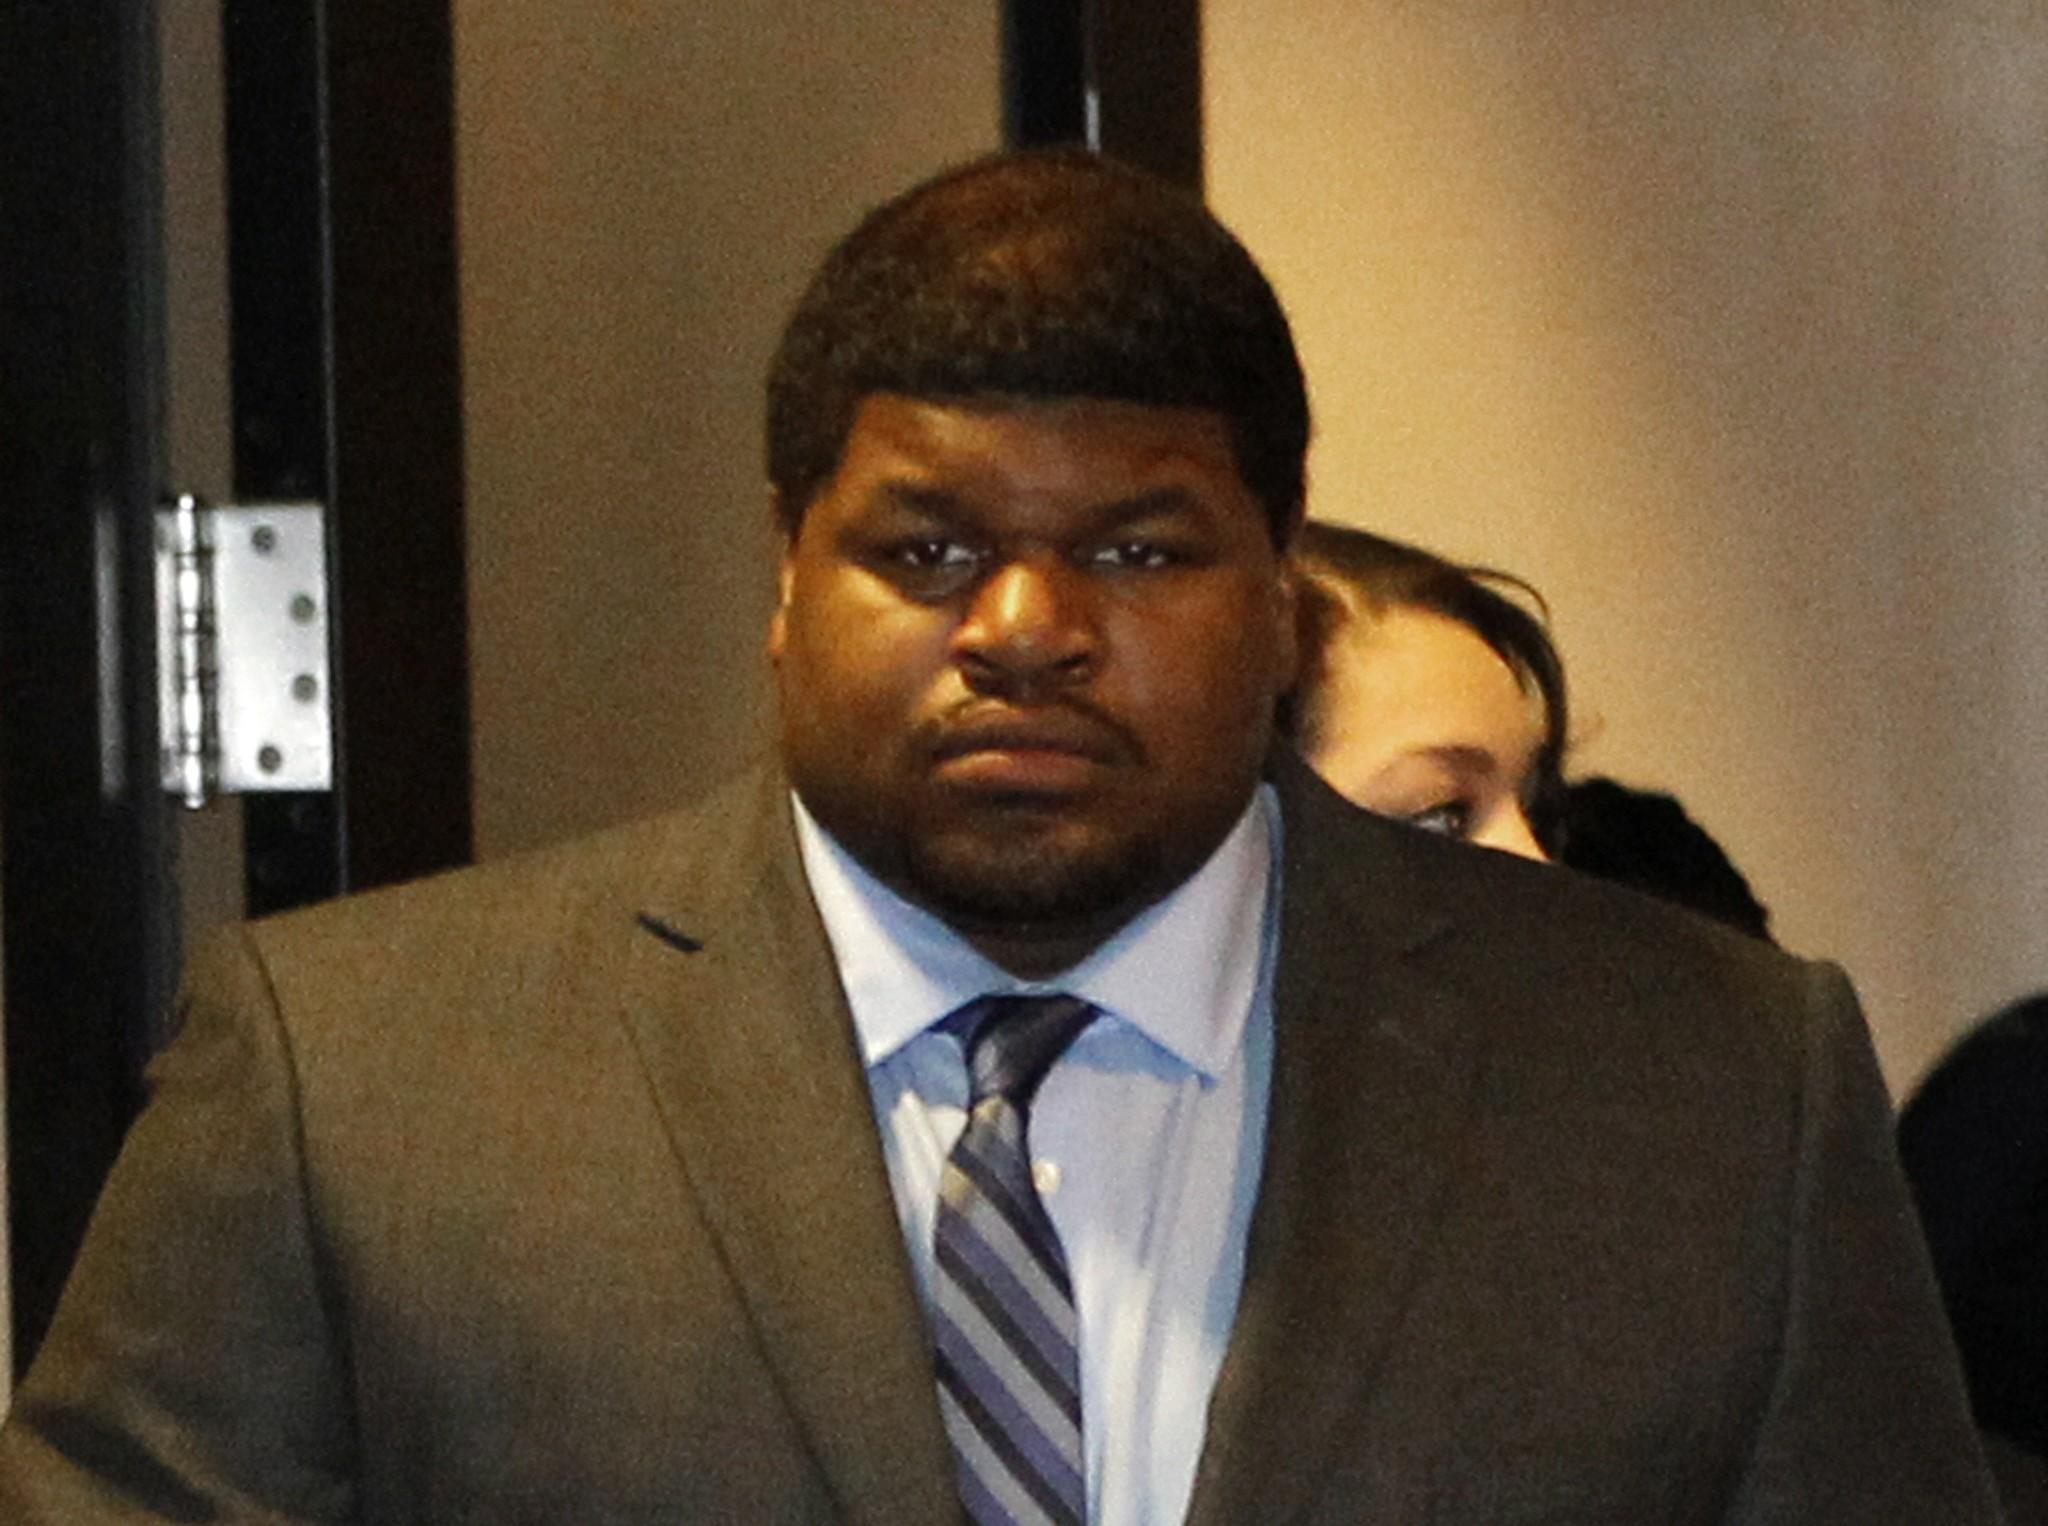 Former Dallas Cowboys and Illinois player Josh Brent was found guilty Wednesday of intoxication manslaughter charges.